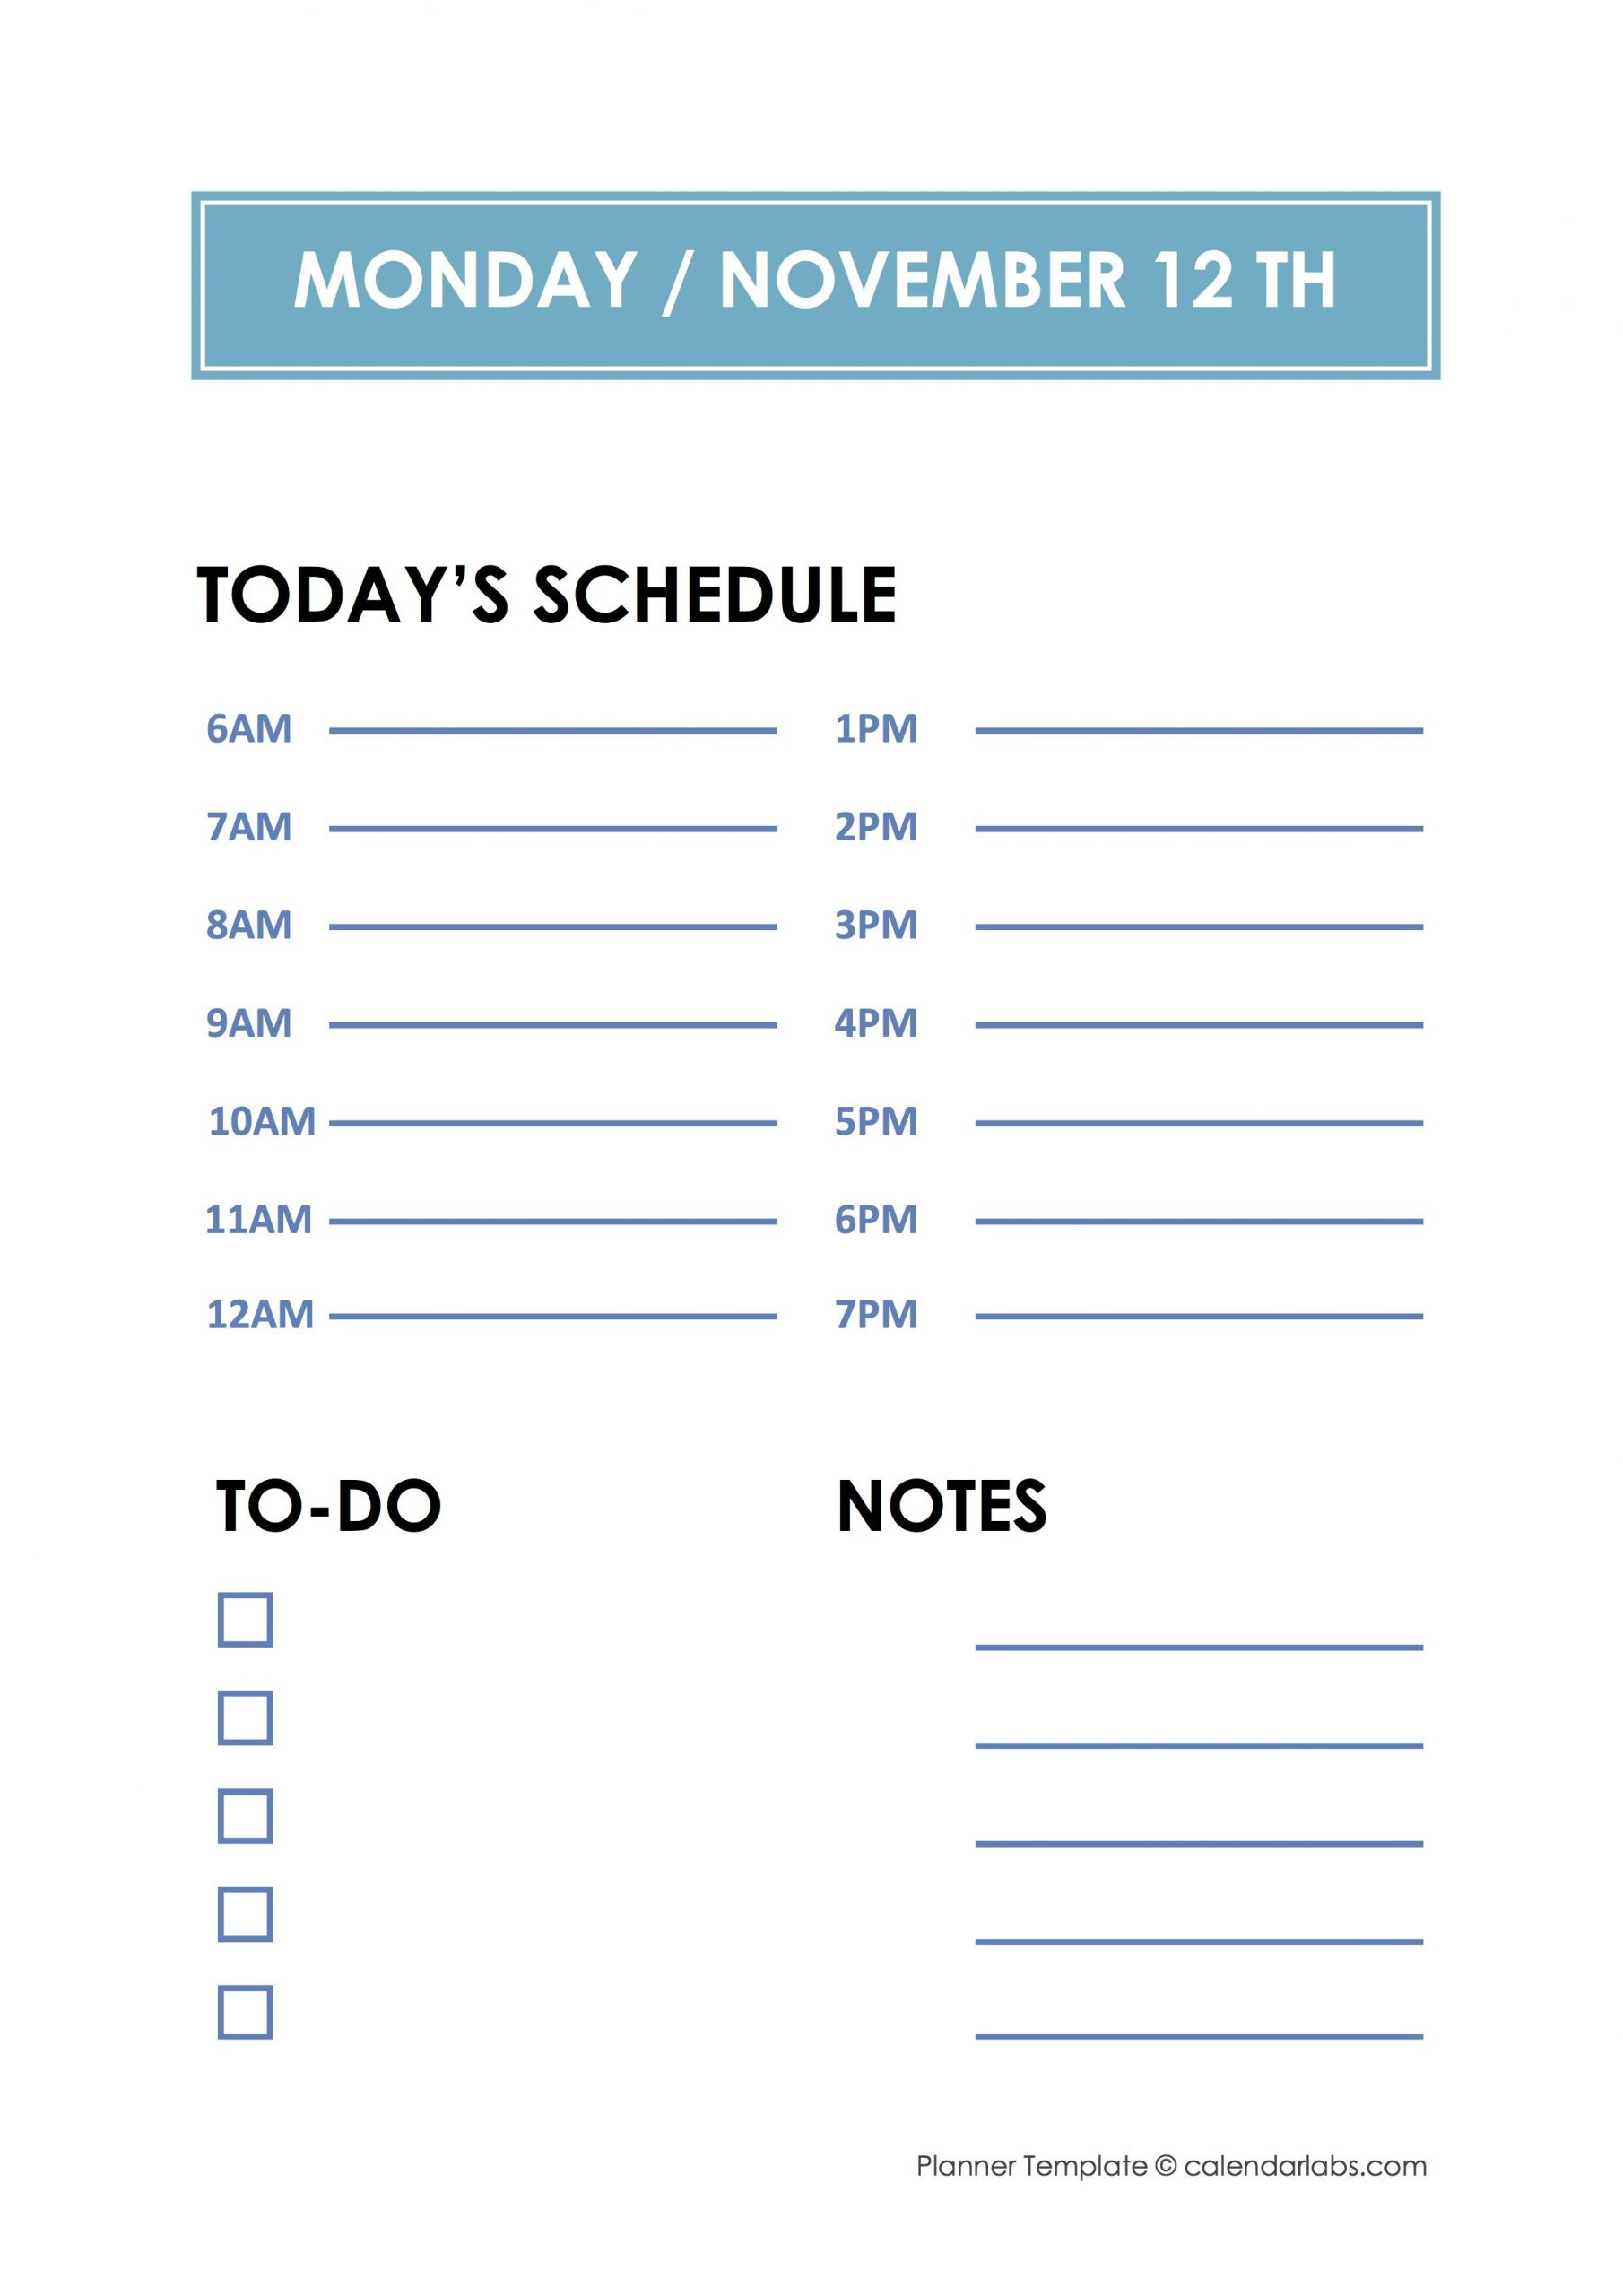 Daily Hourly Planner Template - Free Printable Templates Printable Daily Hourly Calenders